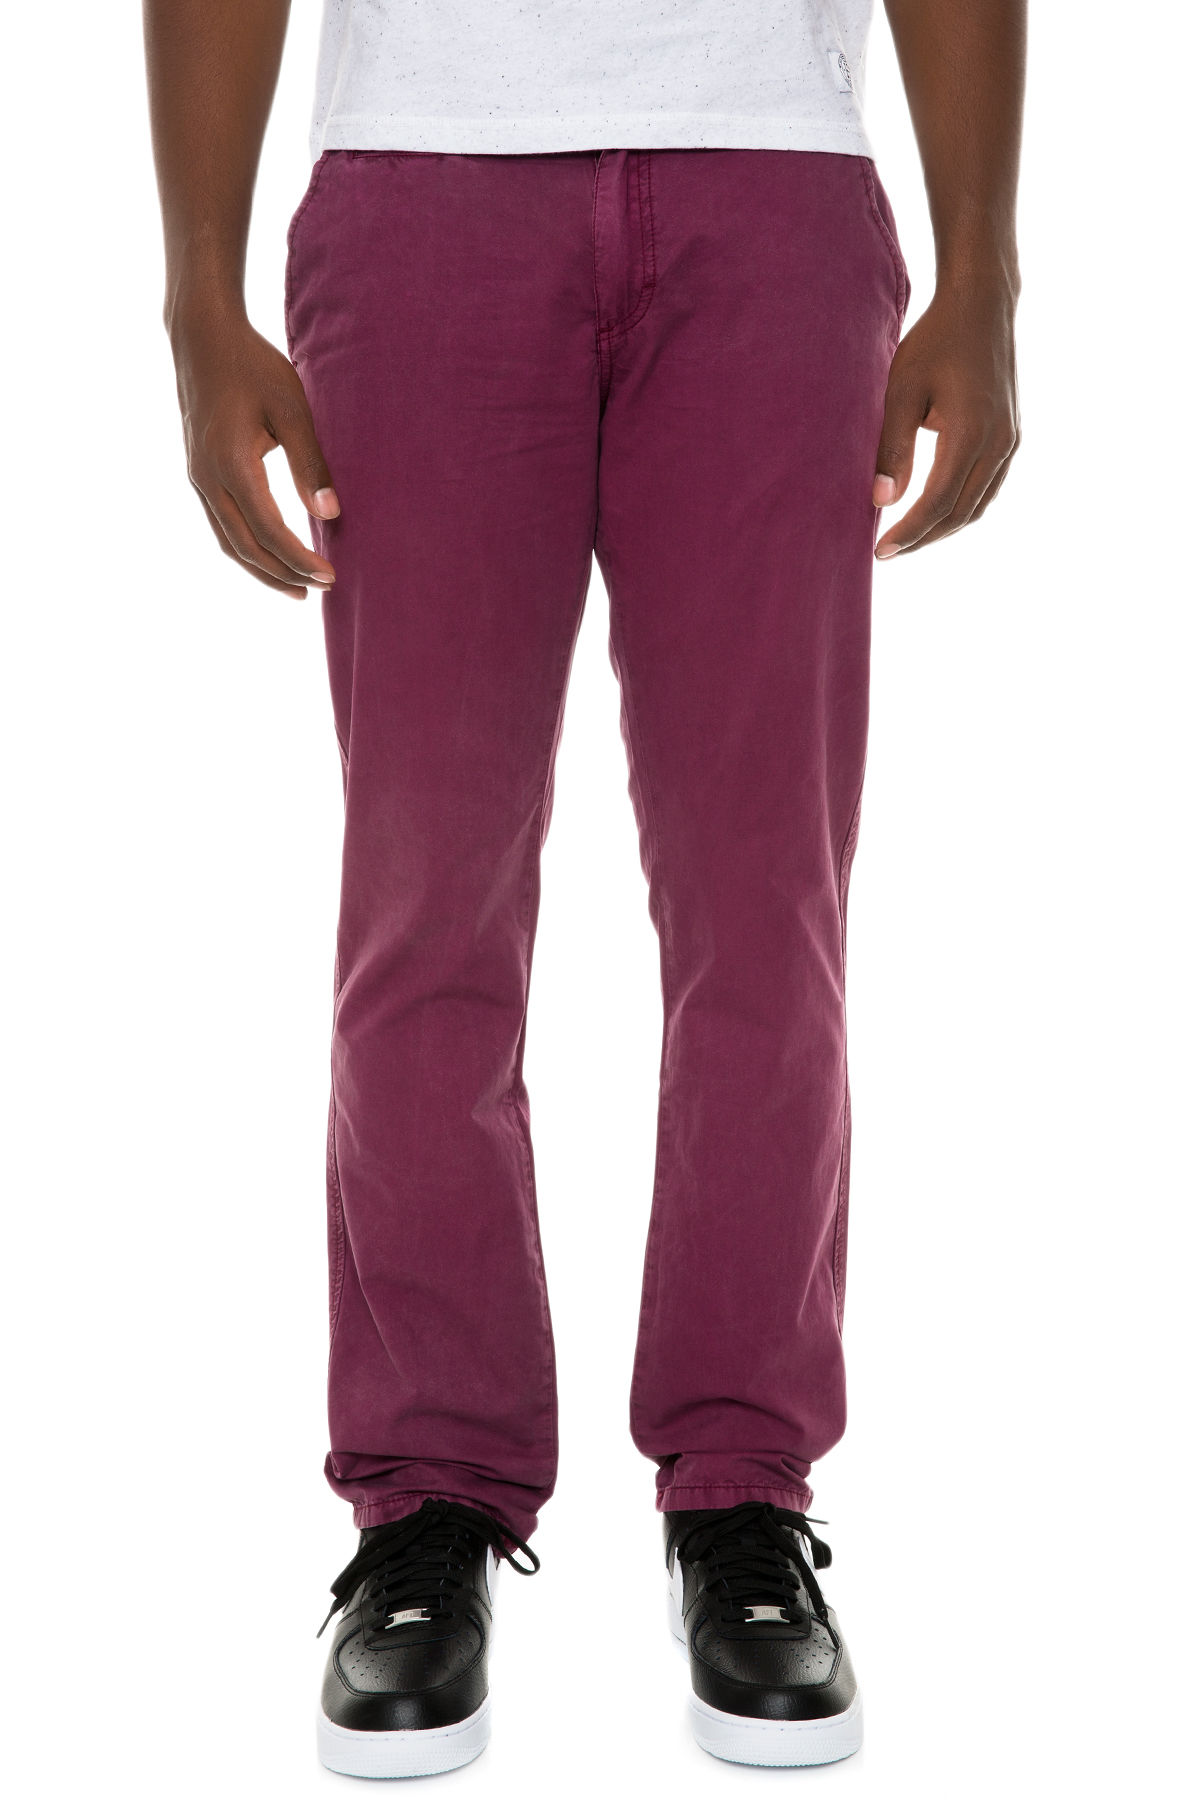 Image of The Hawke Pants in Bordeaux